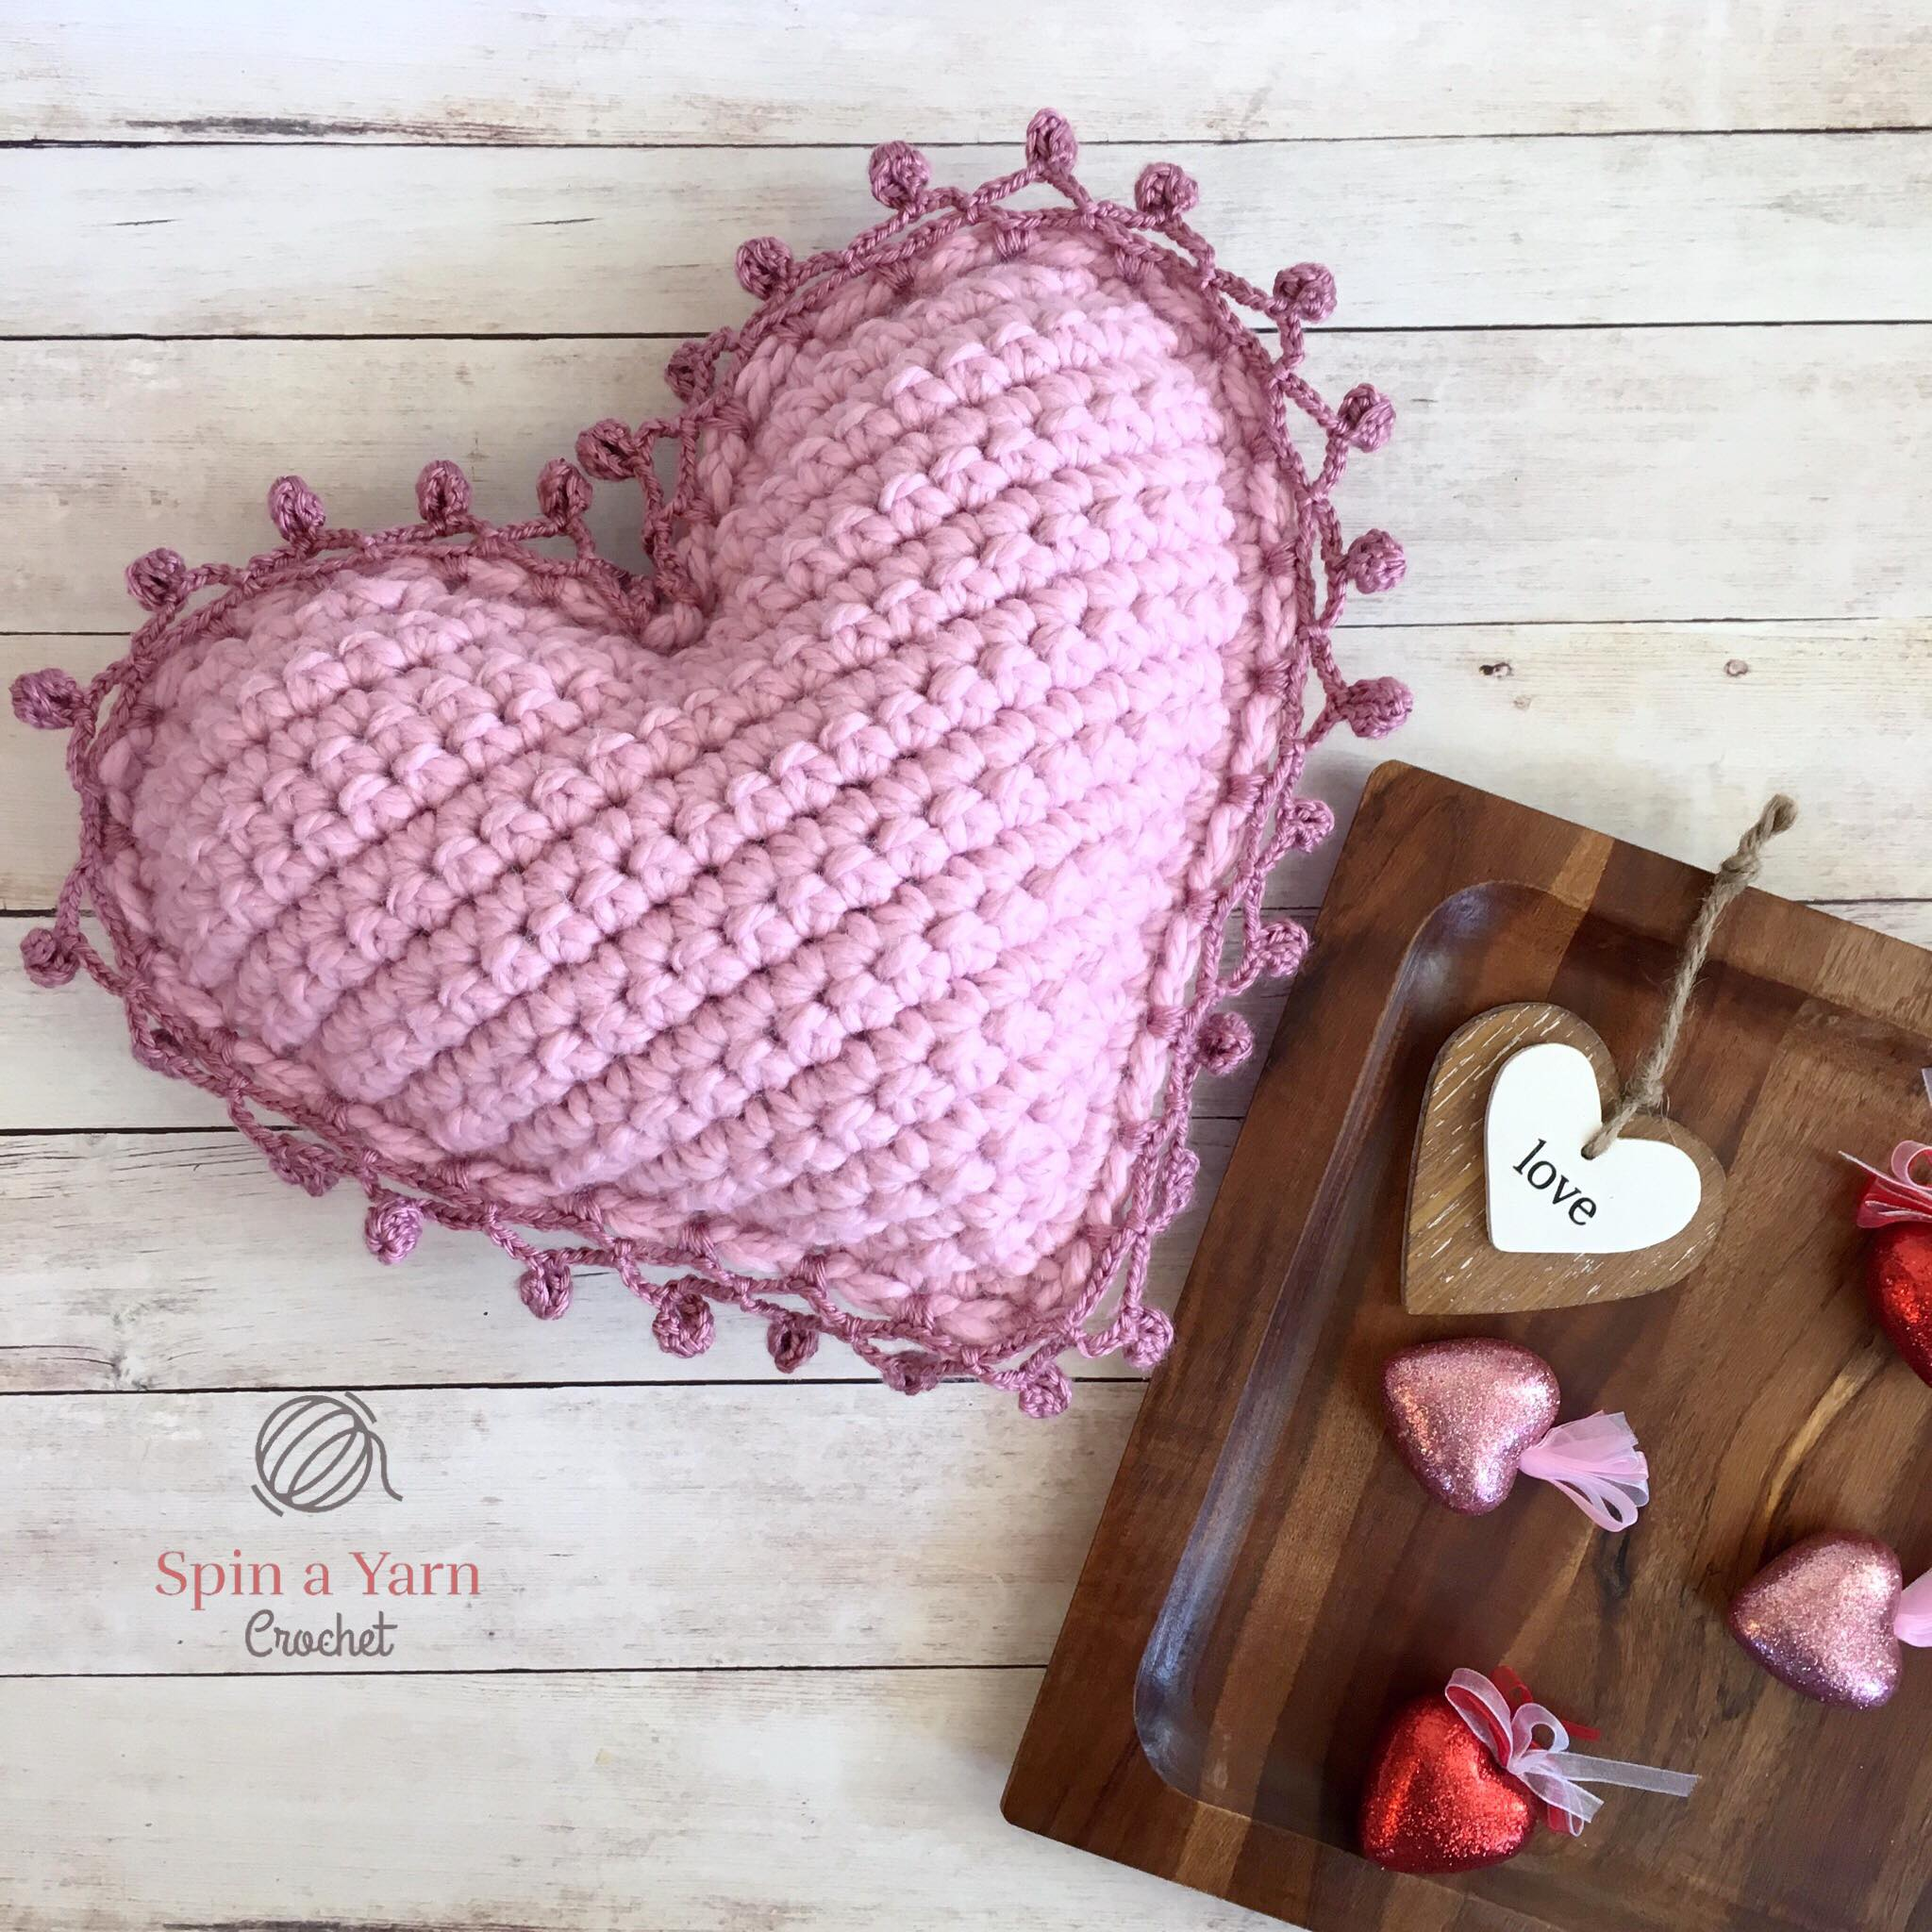 Heart Pillow Free Crochet Pattern • Spin a Yarn Crochet